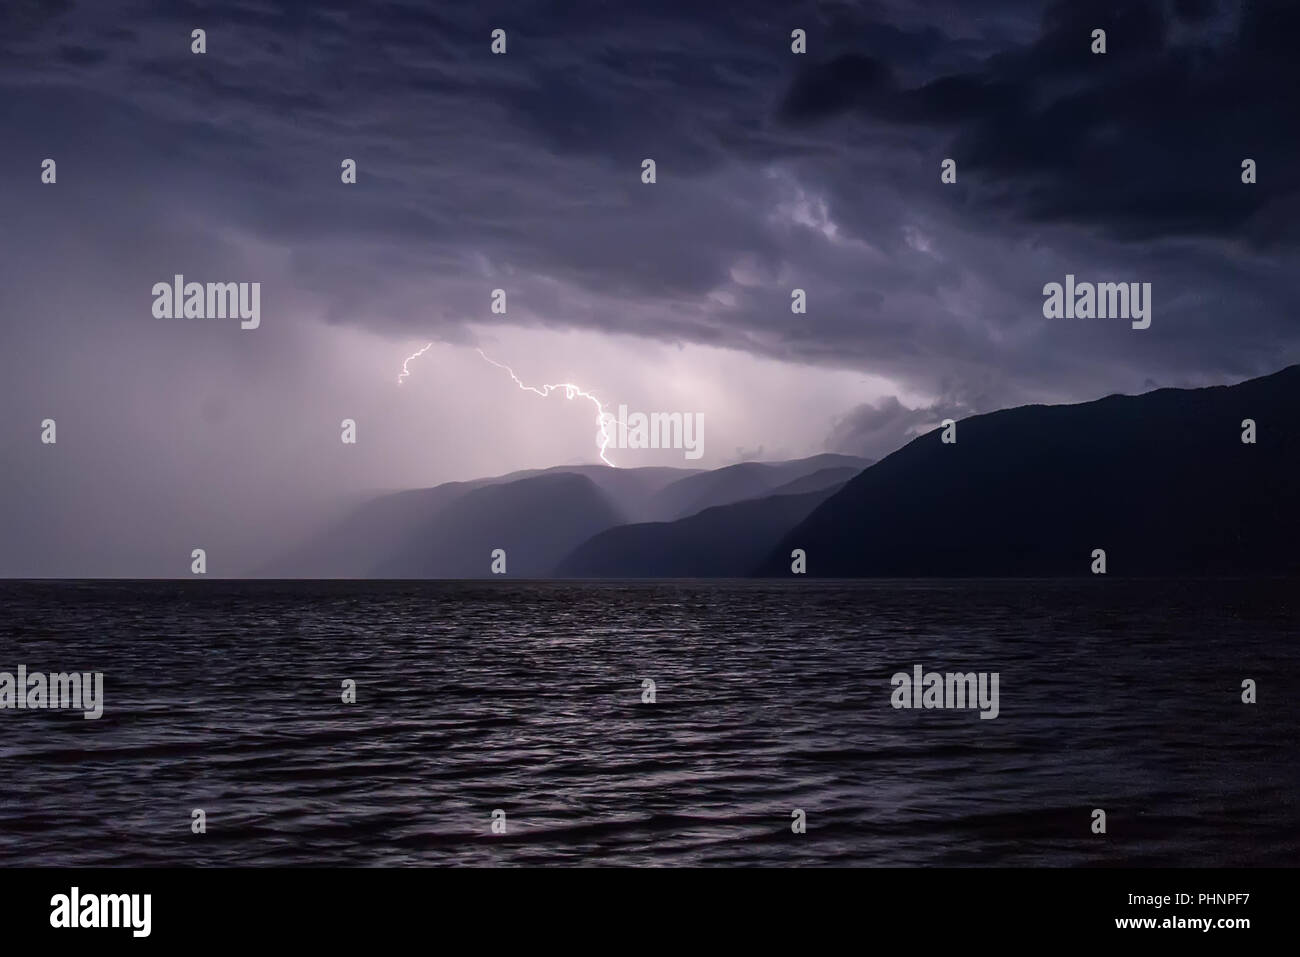 Amazing view with a flash of lightning in dark blue clouds during a thunderstorm over a lake in the mountains - Stock Image